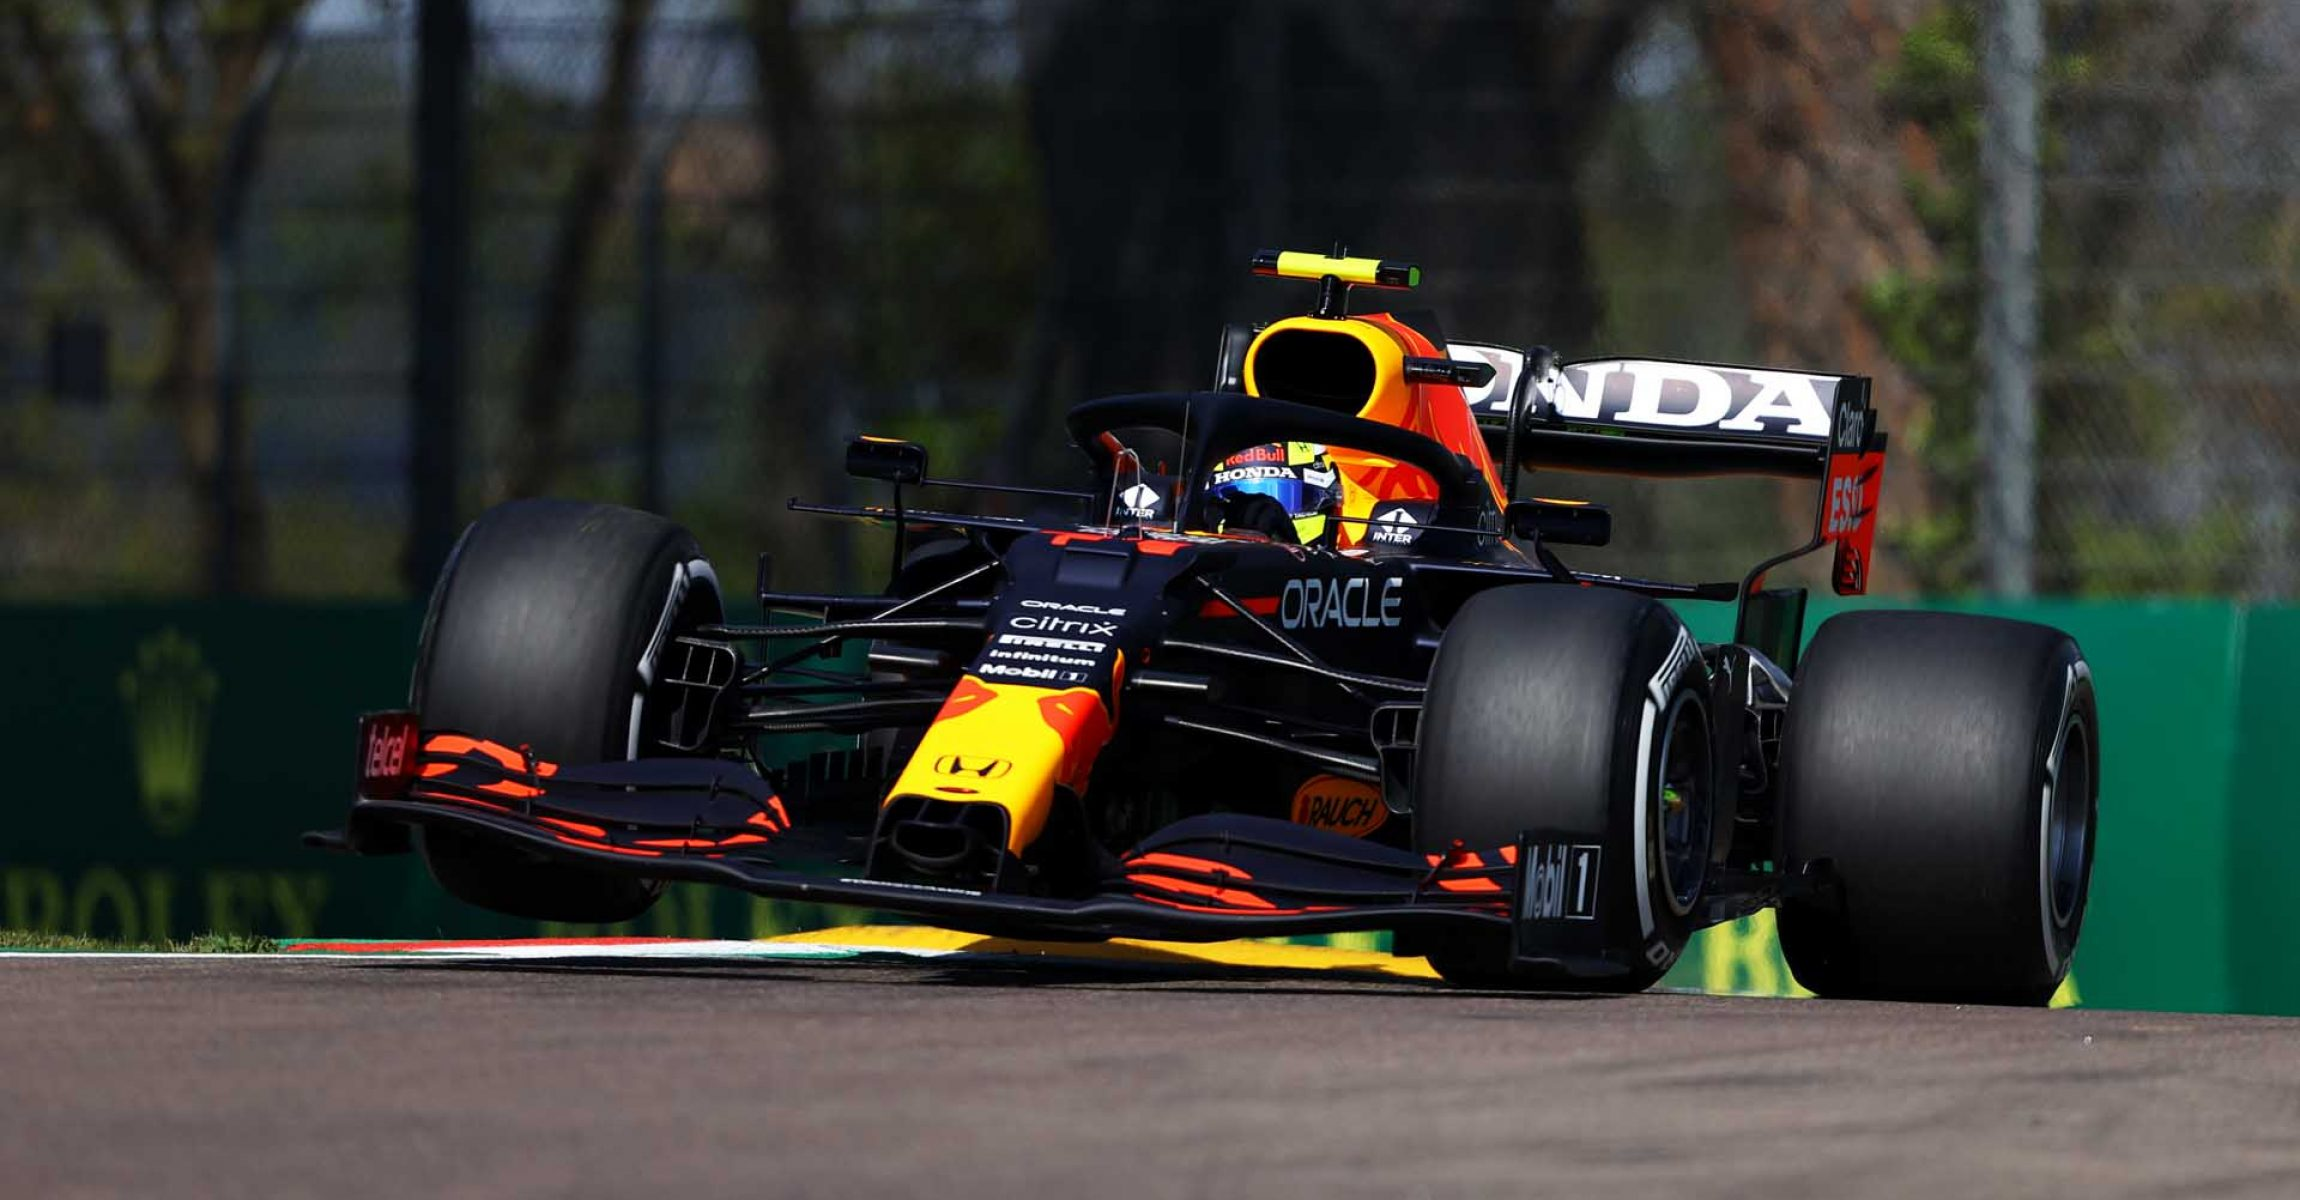 IMOLA, ITALY - APRIL 16: Sergio Perez of Mexico driving the (11) Red Bull Racing RB16B Honda on track during practice ahead of the F1 Grand Prix of Emilia Romagna at Autodromo Enzo e Dino Ferrari on April 16, 2021 in Imola, Italy. (Photo by Bryn Lennon/Getty Images)